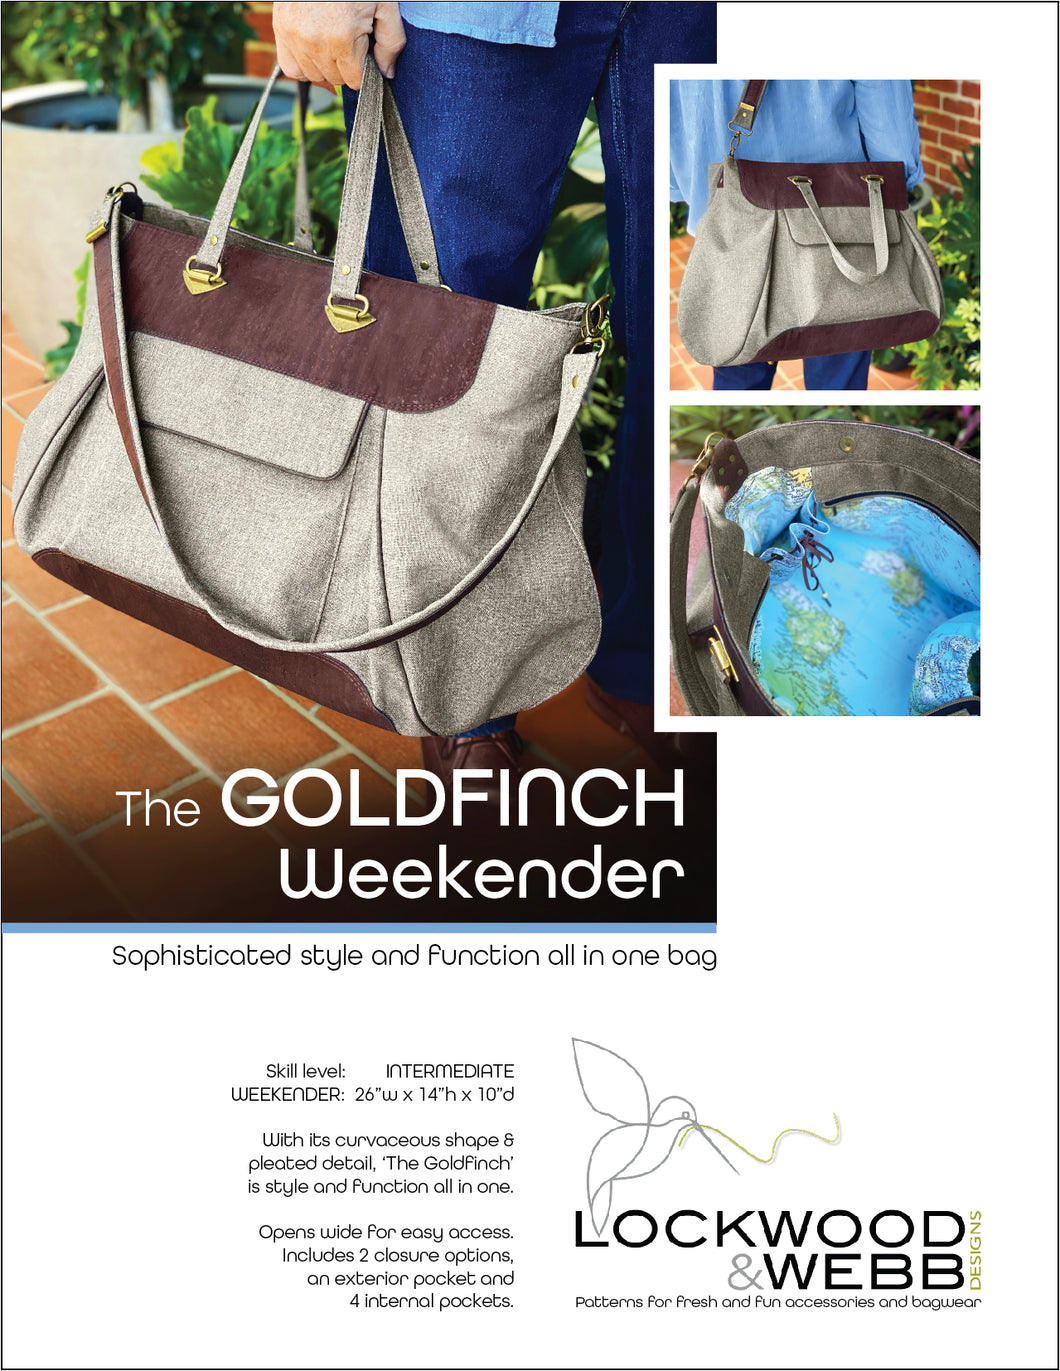 The Goldfinch WEEKENDER